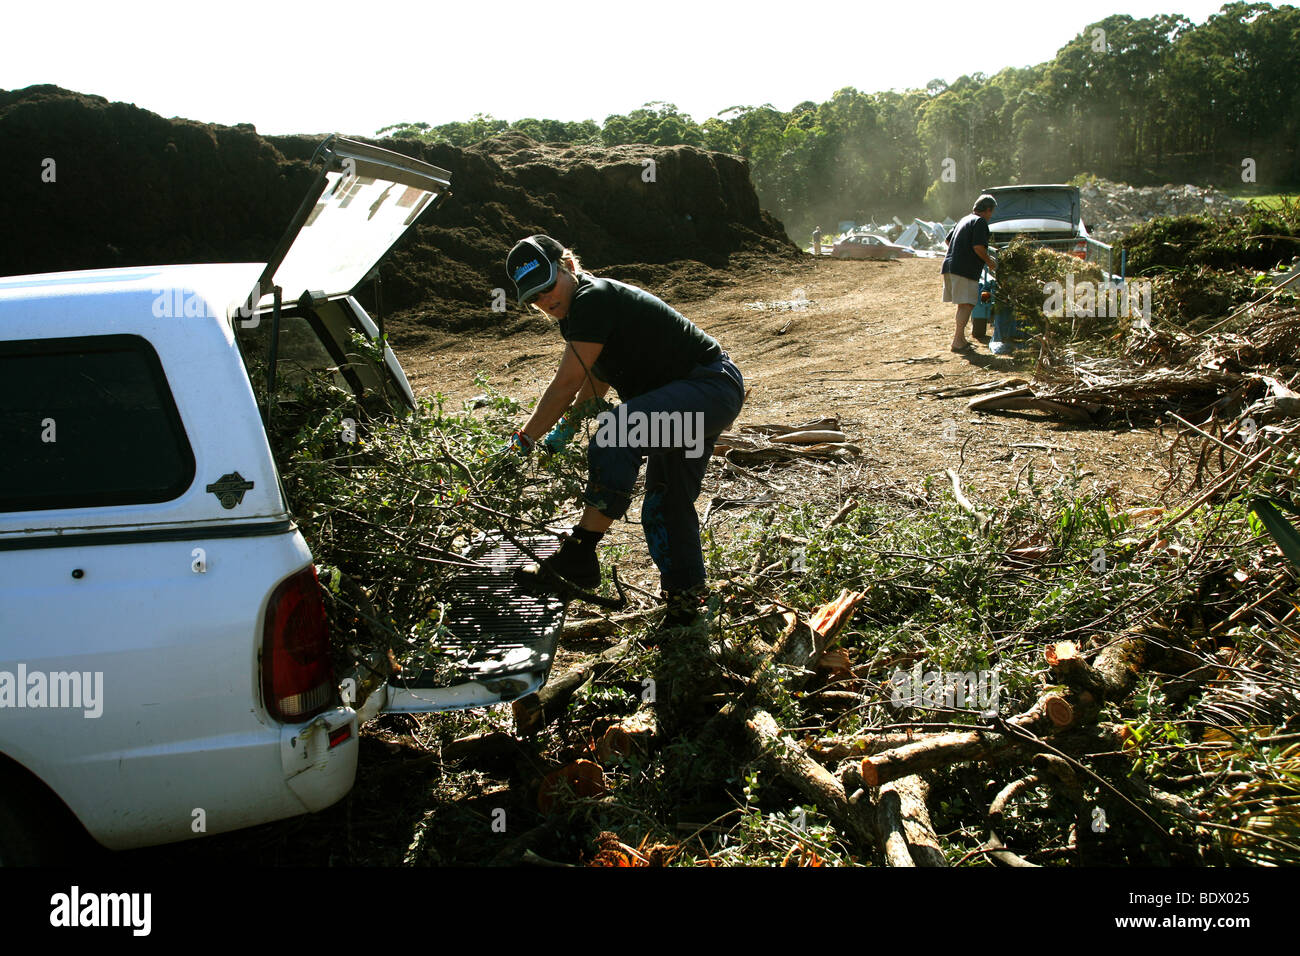 A woman recycles green waste from the garden at a rubbish dump where it is converted to mulch. - Stock Image